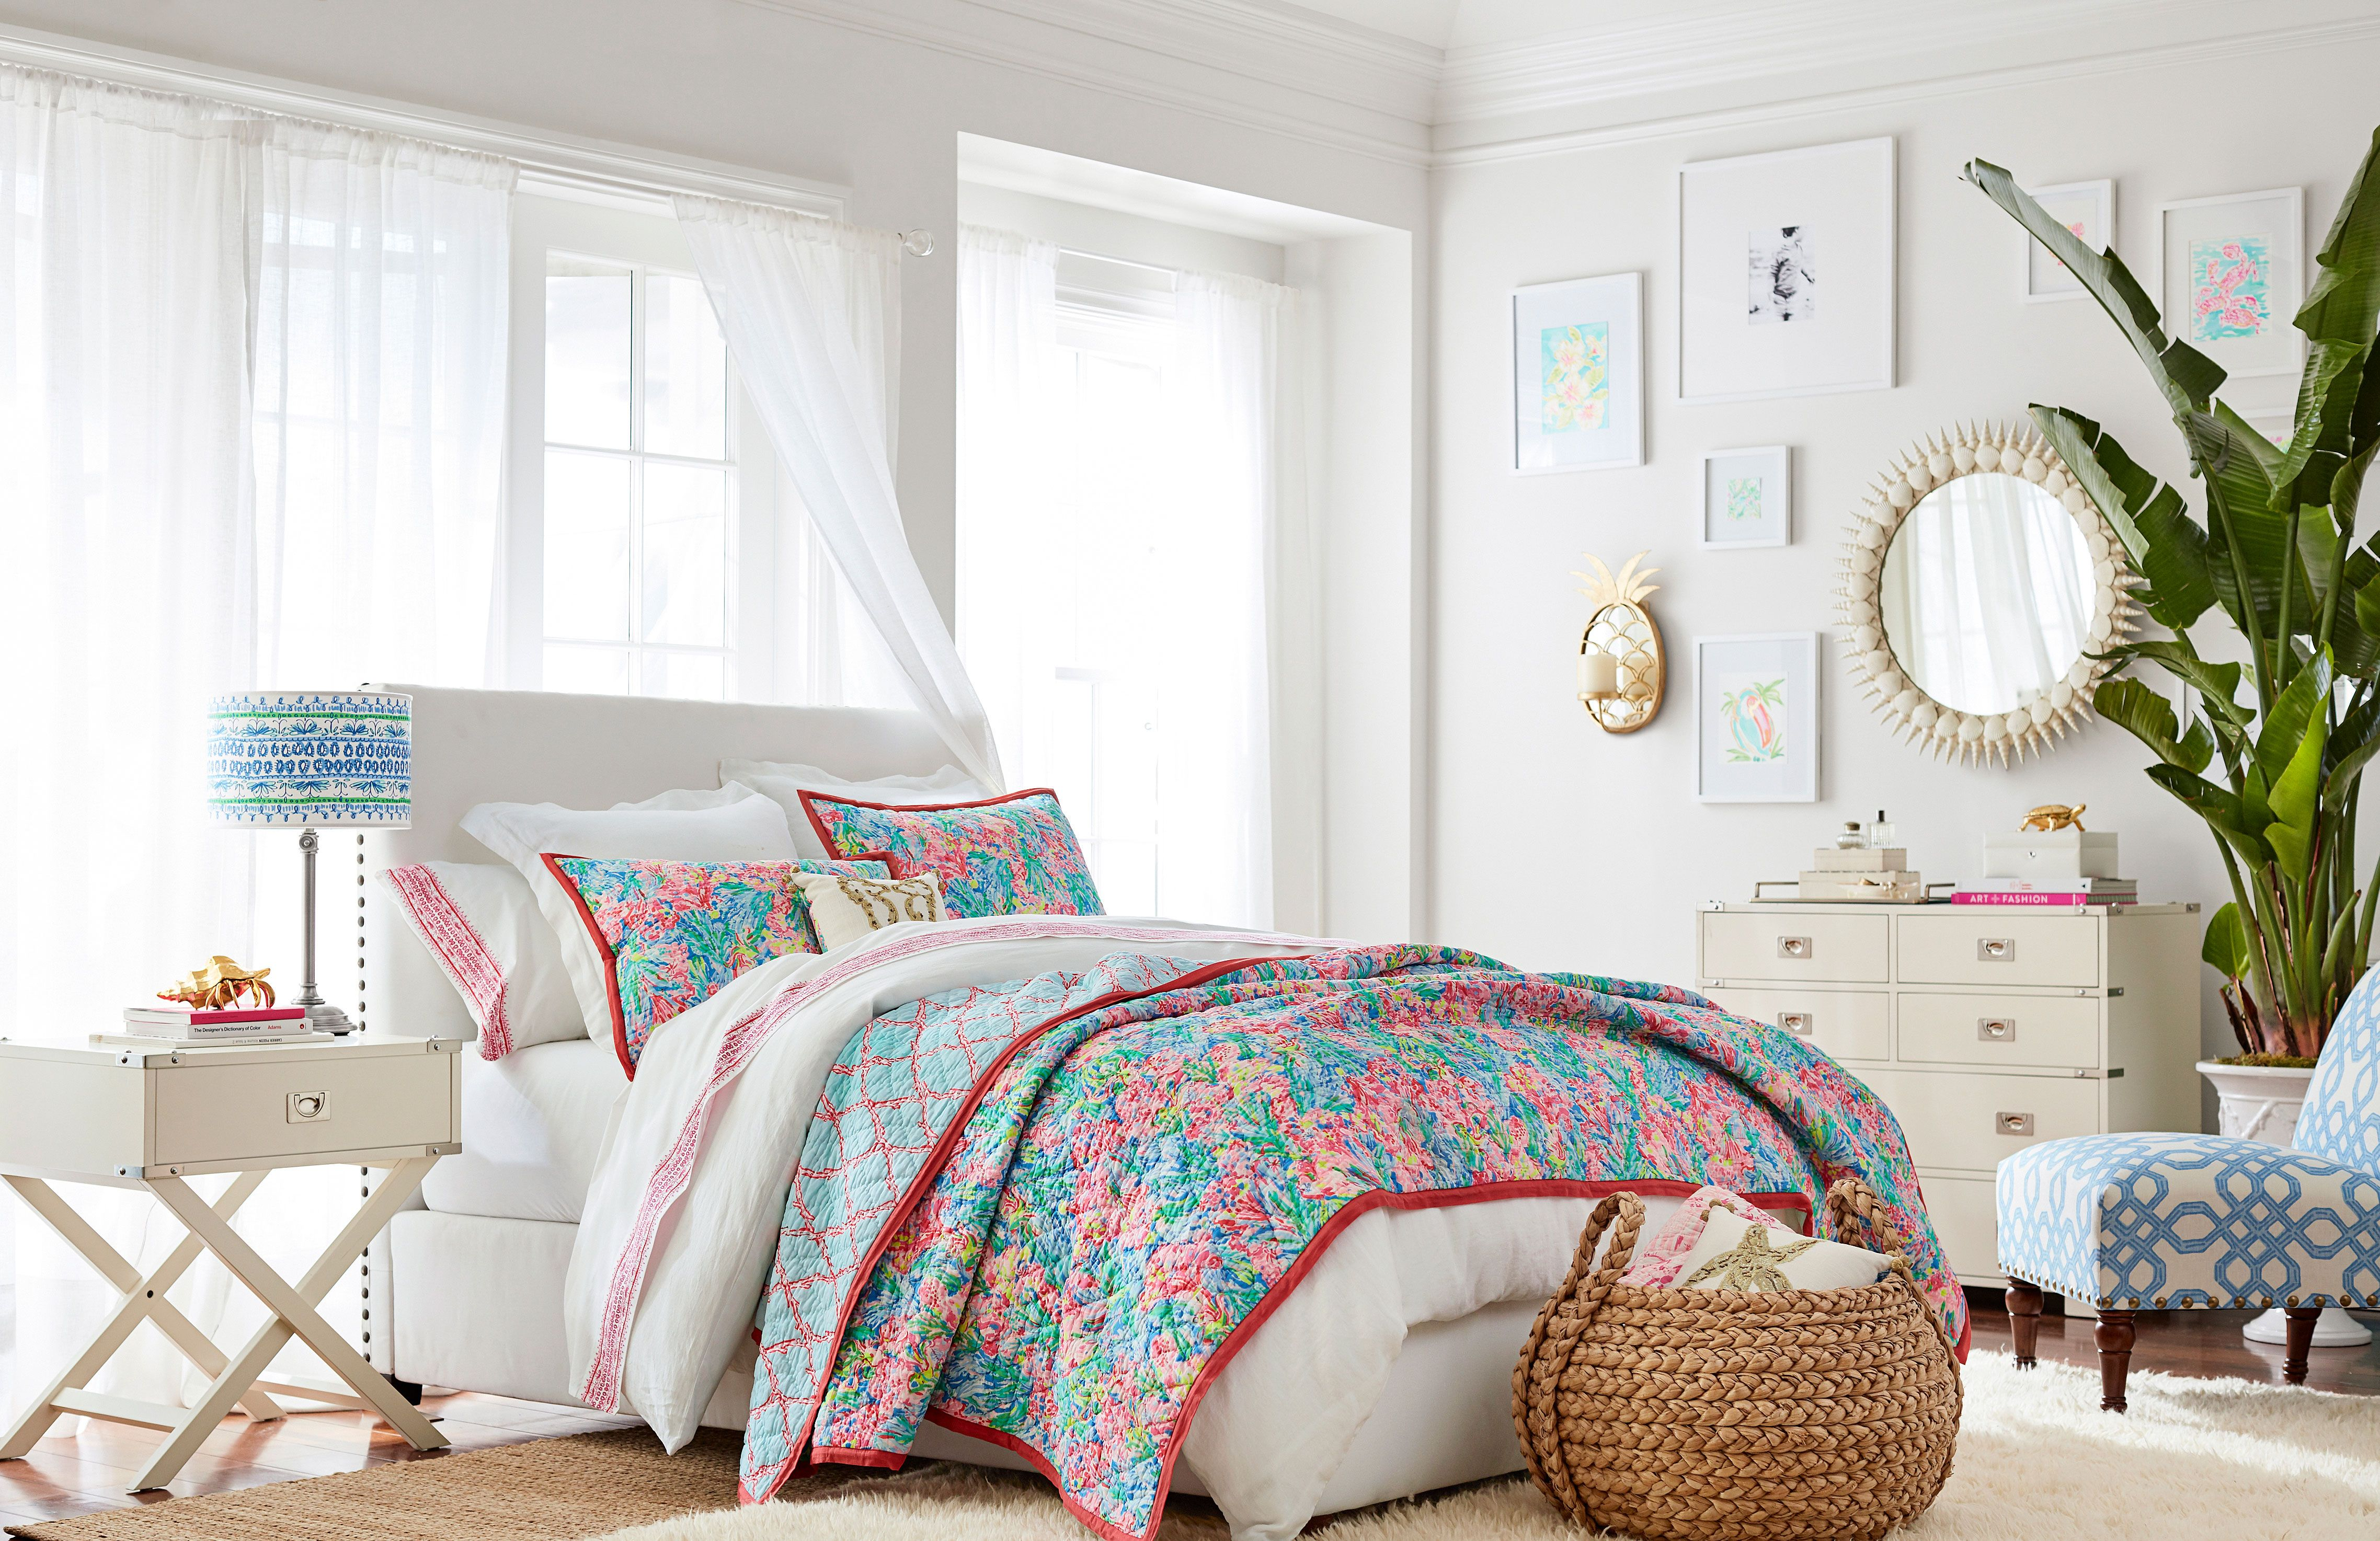 The Lilly Pulitzer X Pottery Barn Collaboration Is Finally Here